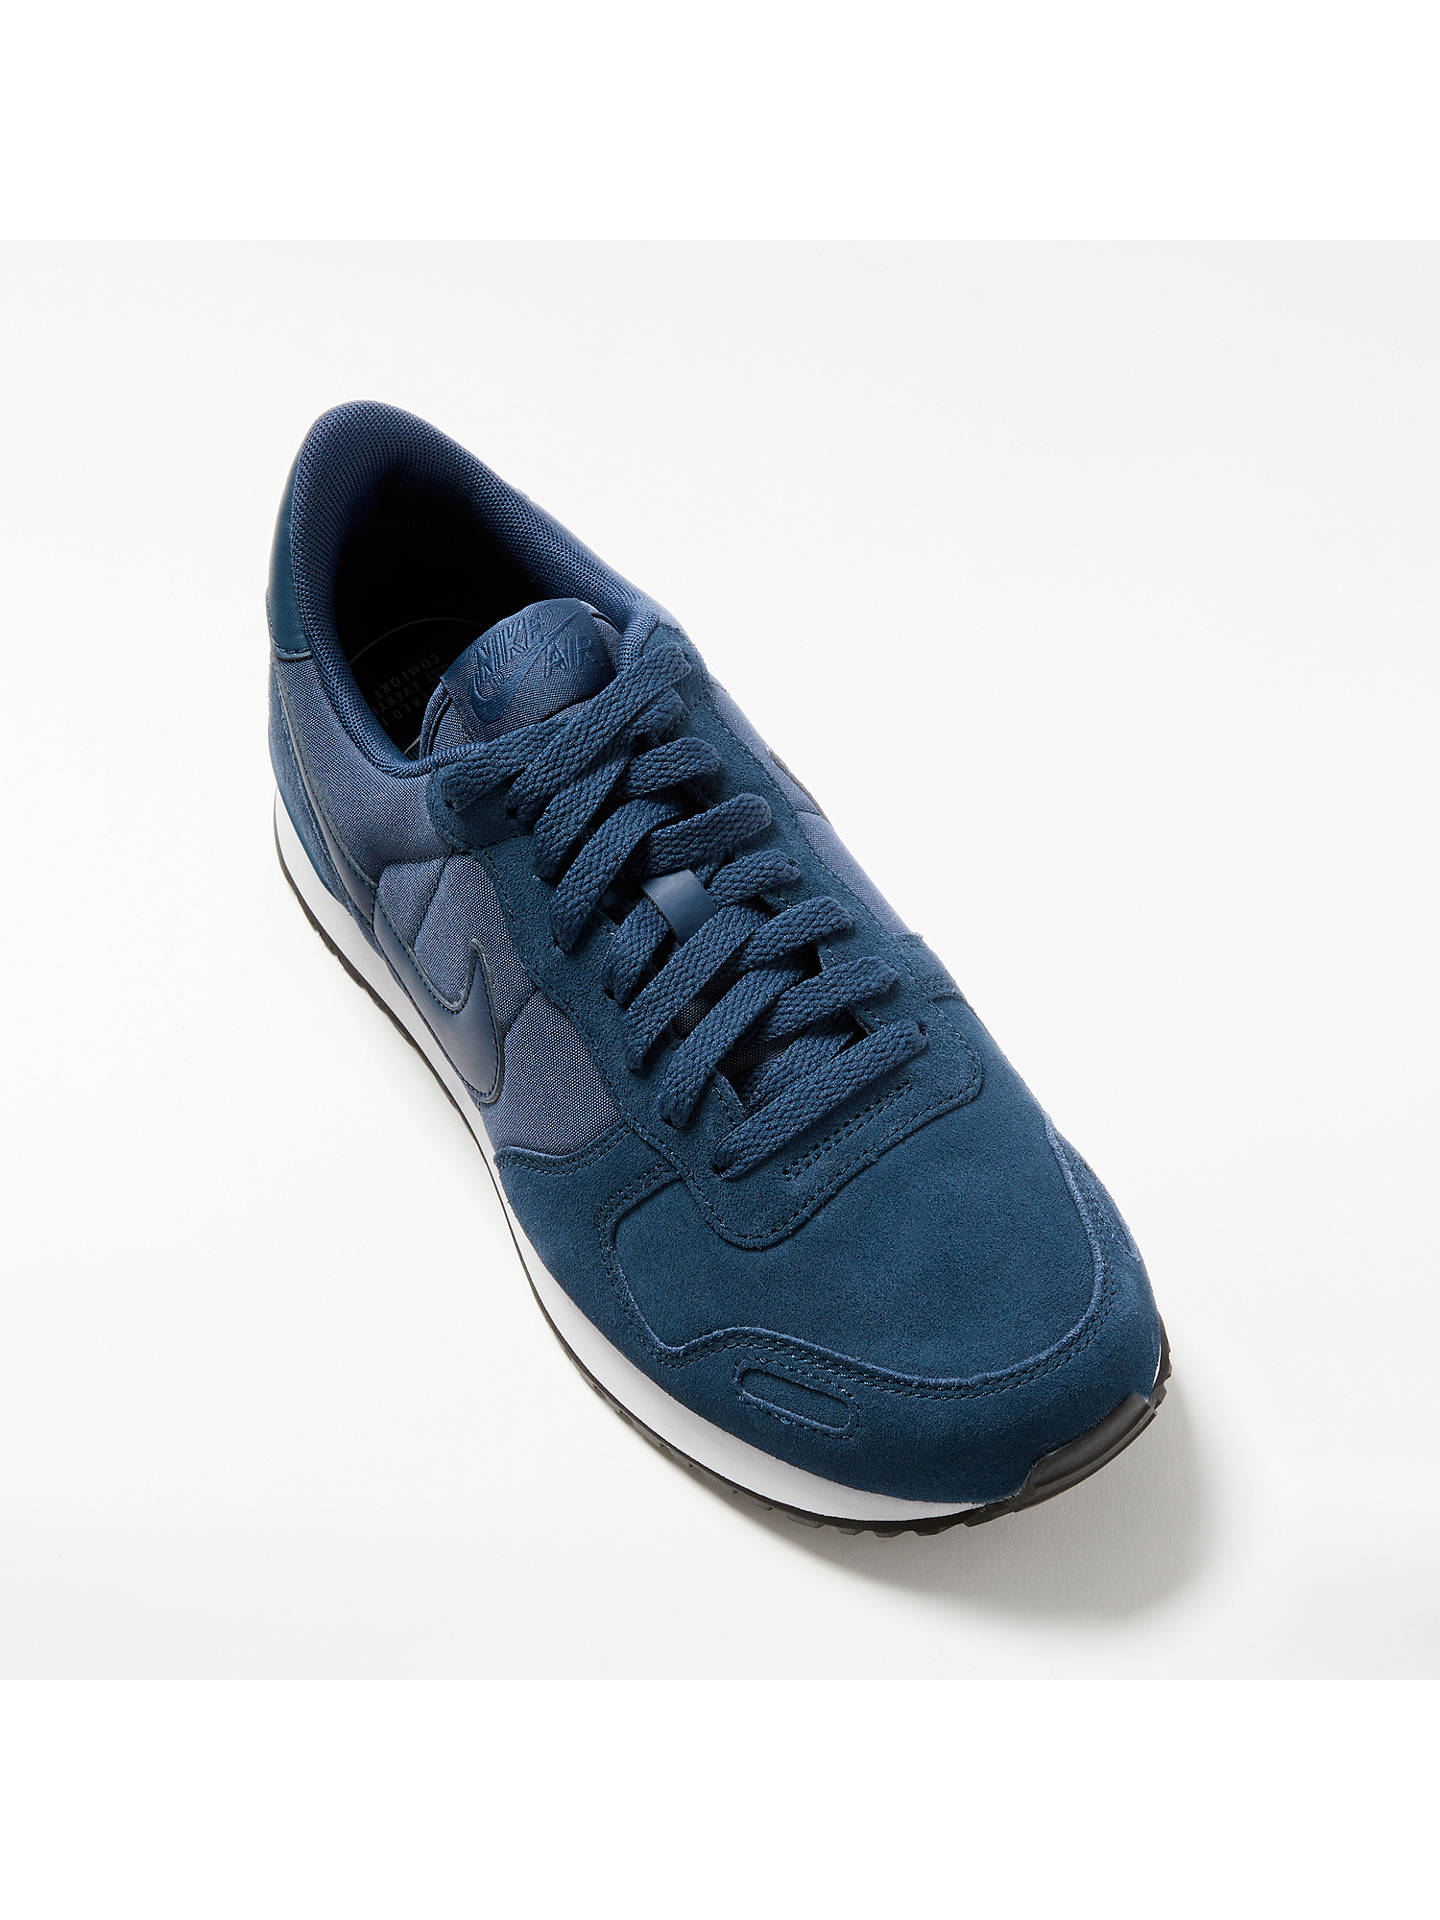 Nike Air Vortex Leather Men's Trainers at John Lewis & Partners